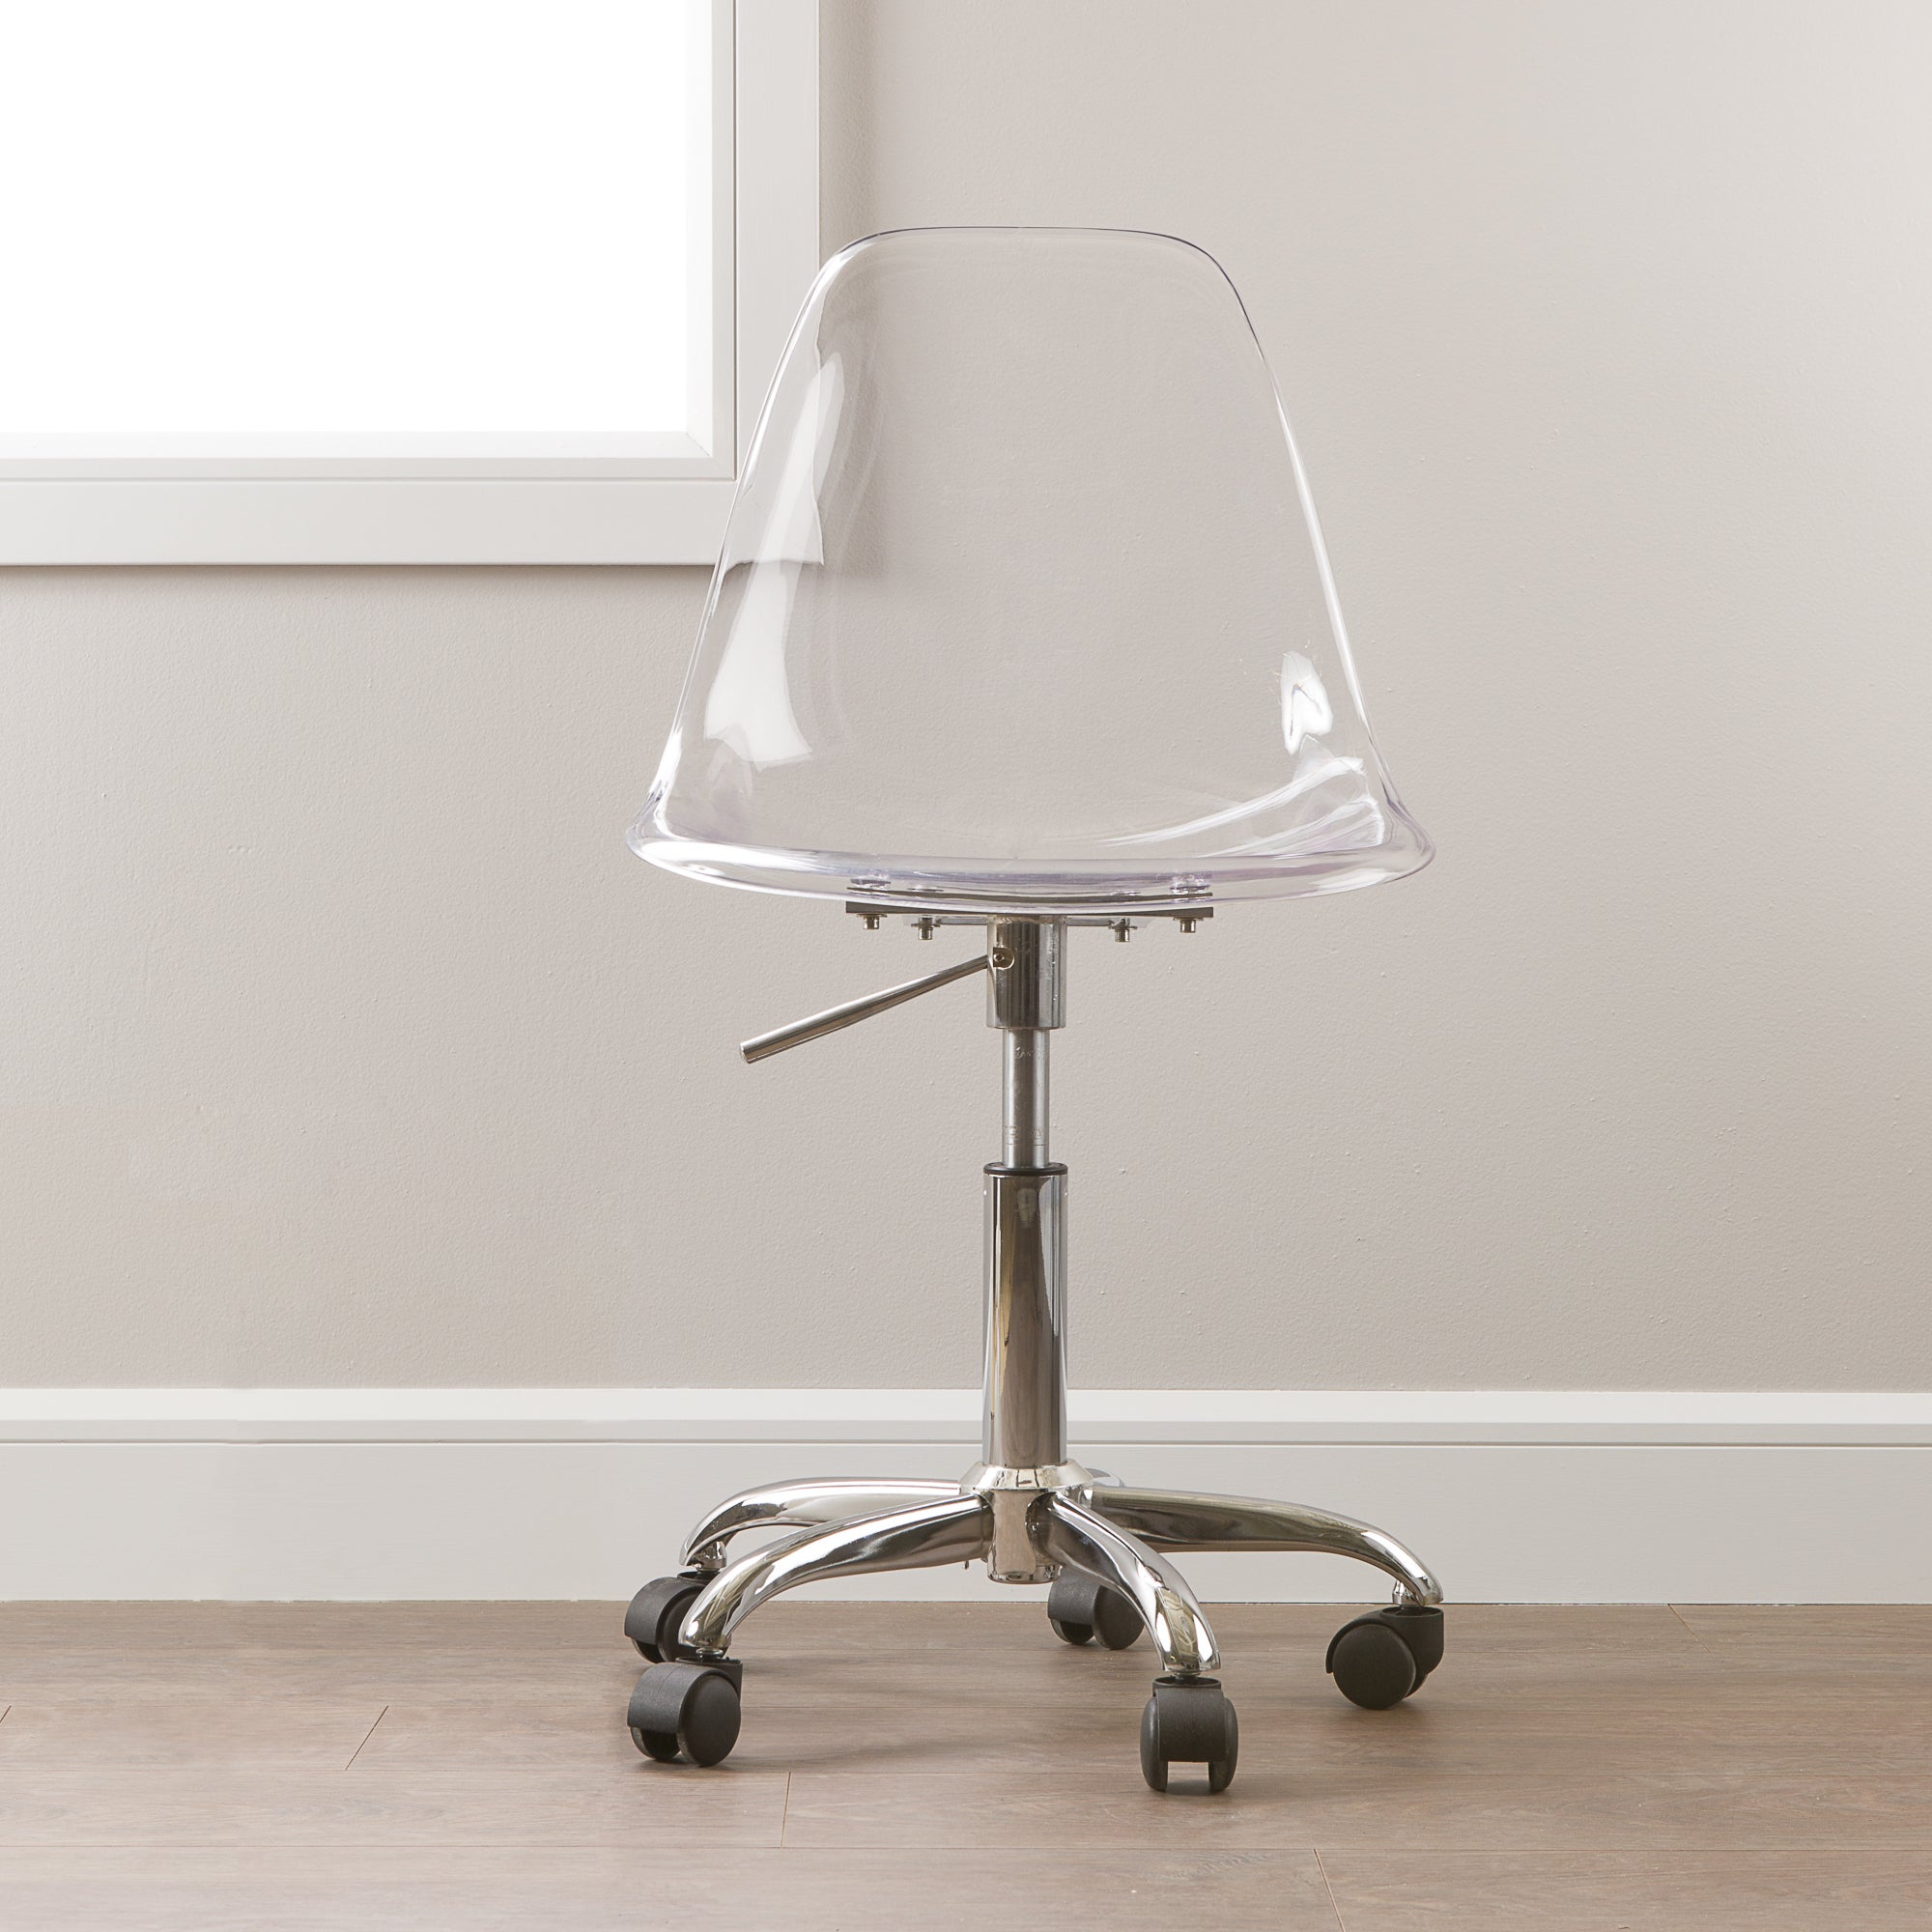 Desk chair clear acrylic adjustable height 5 wheels home office furniture new